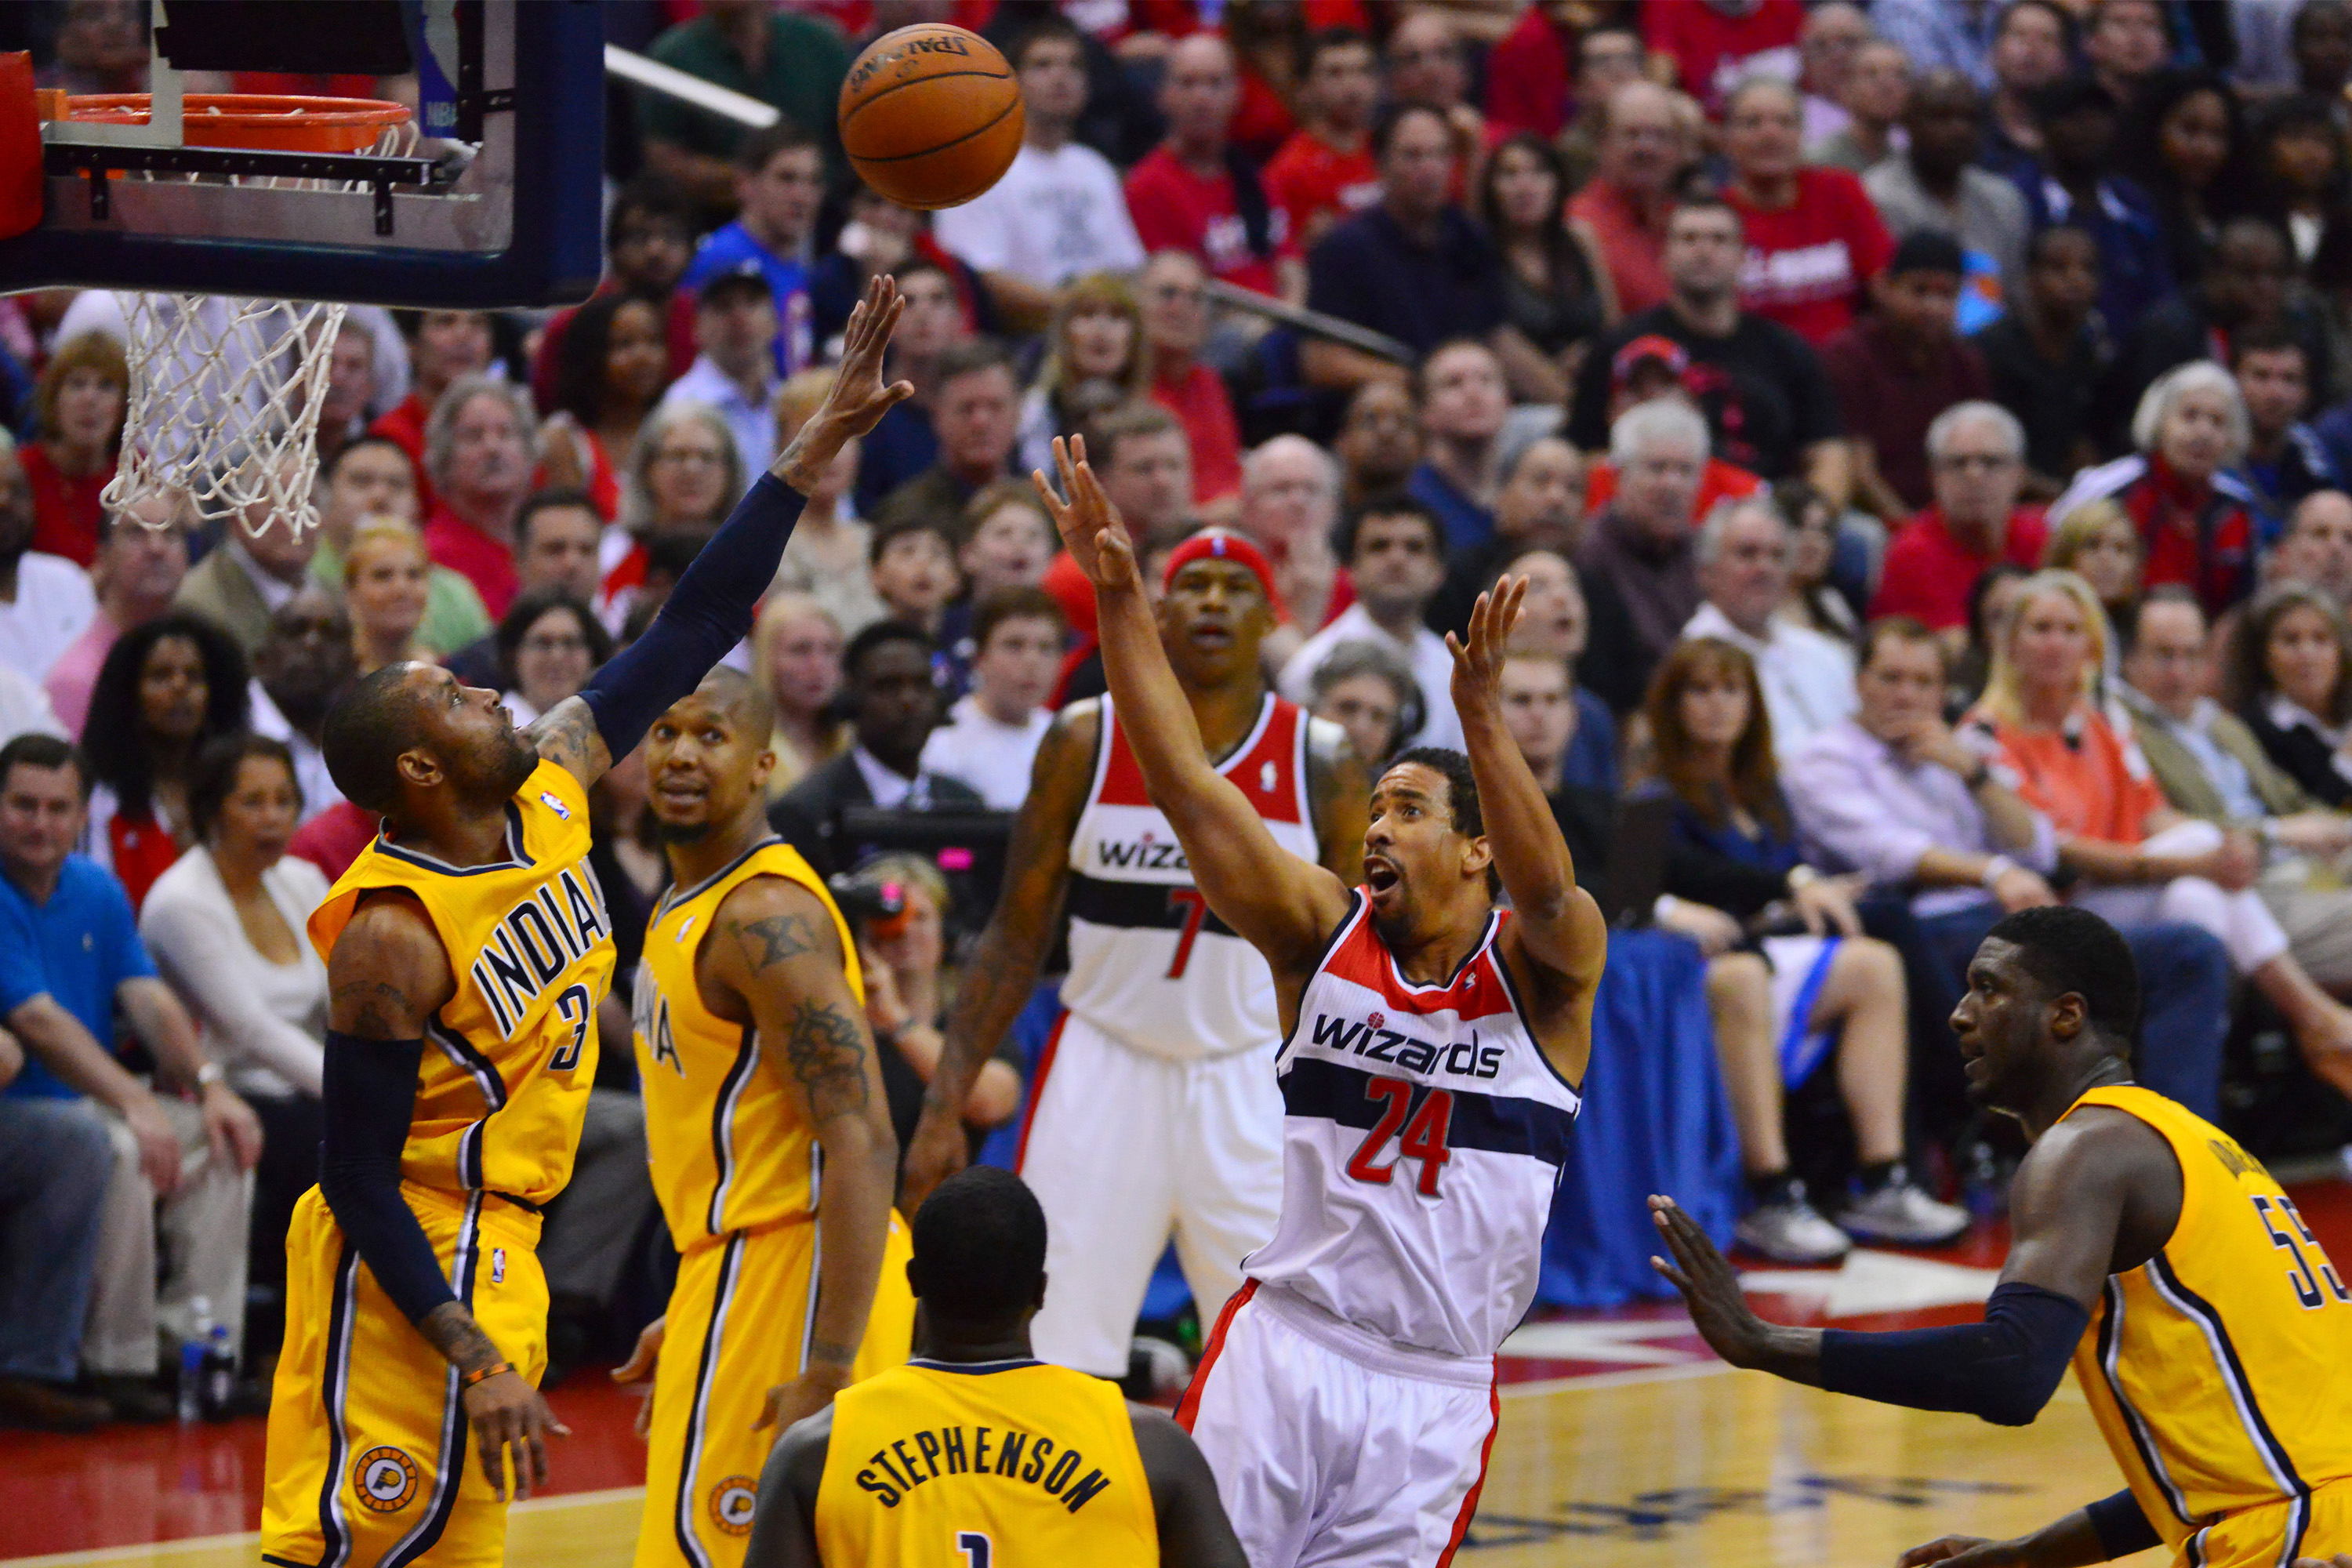 Pacers-Wizards Game 5: Two big questions